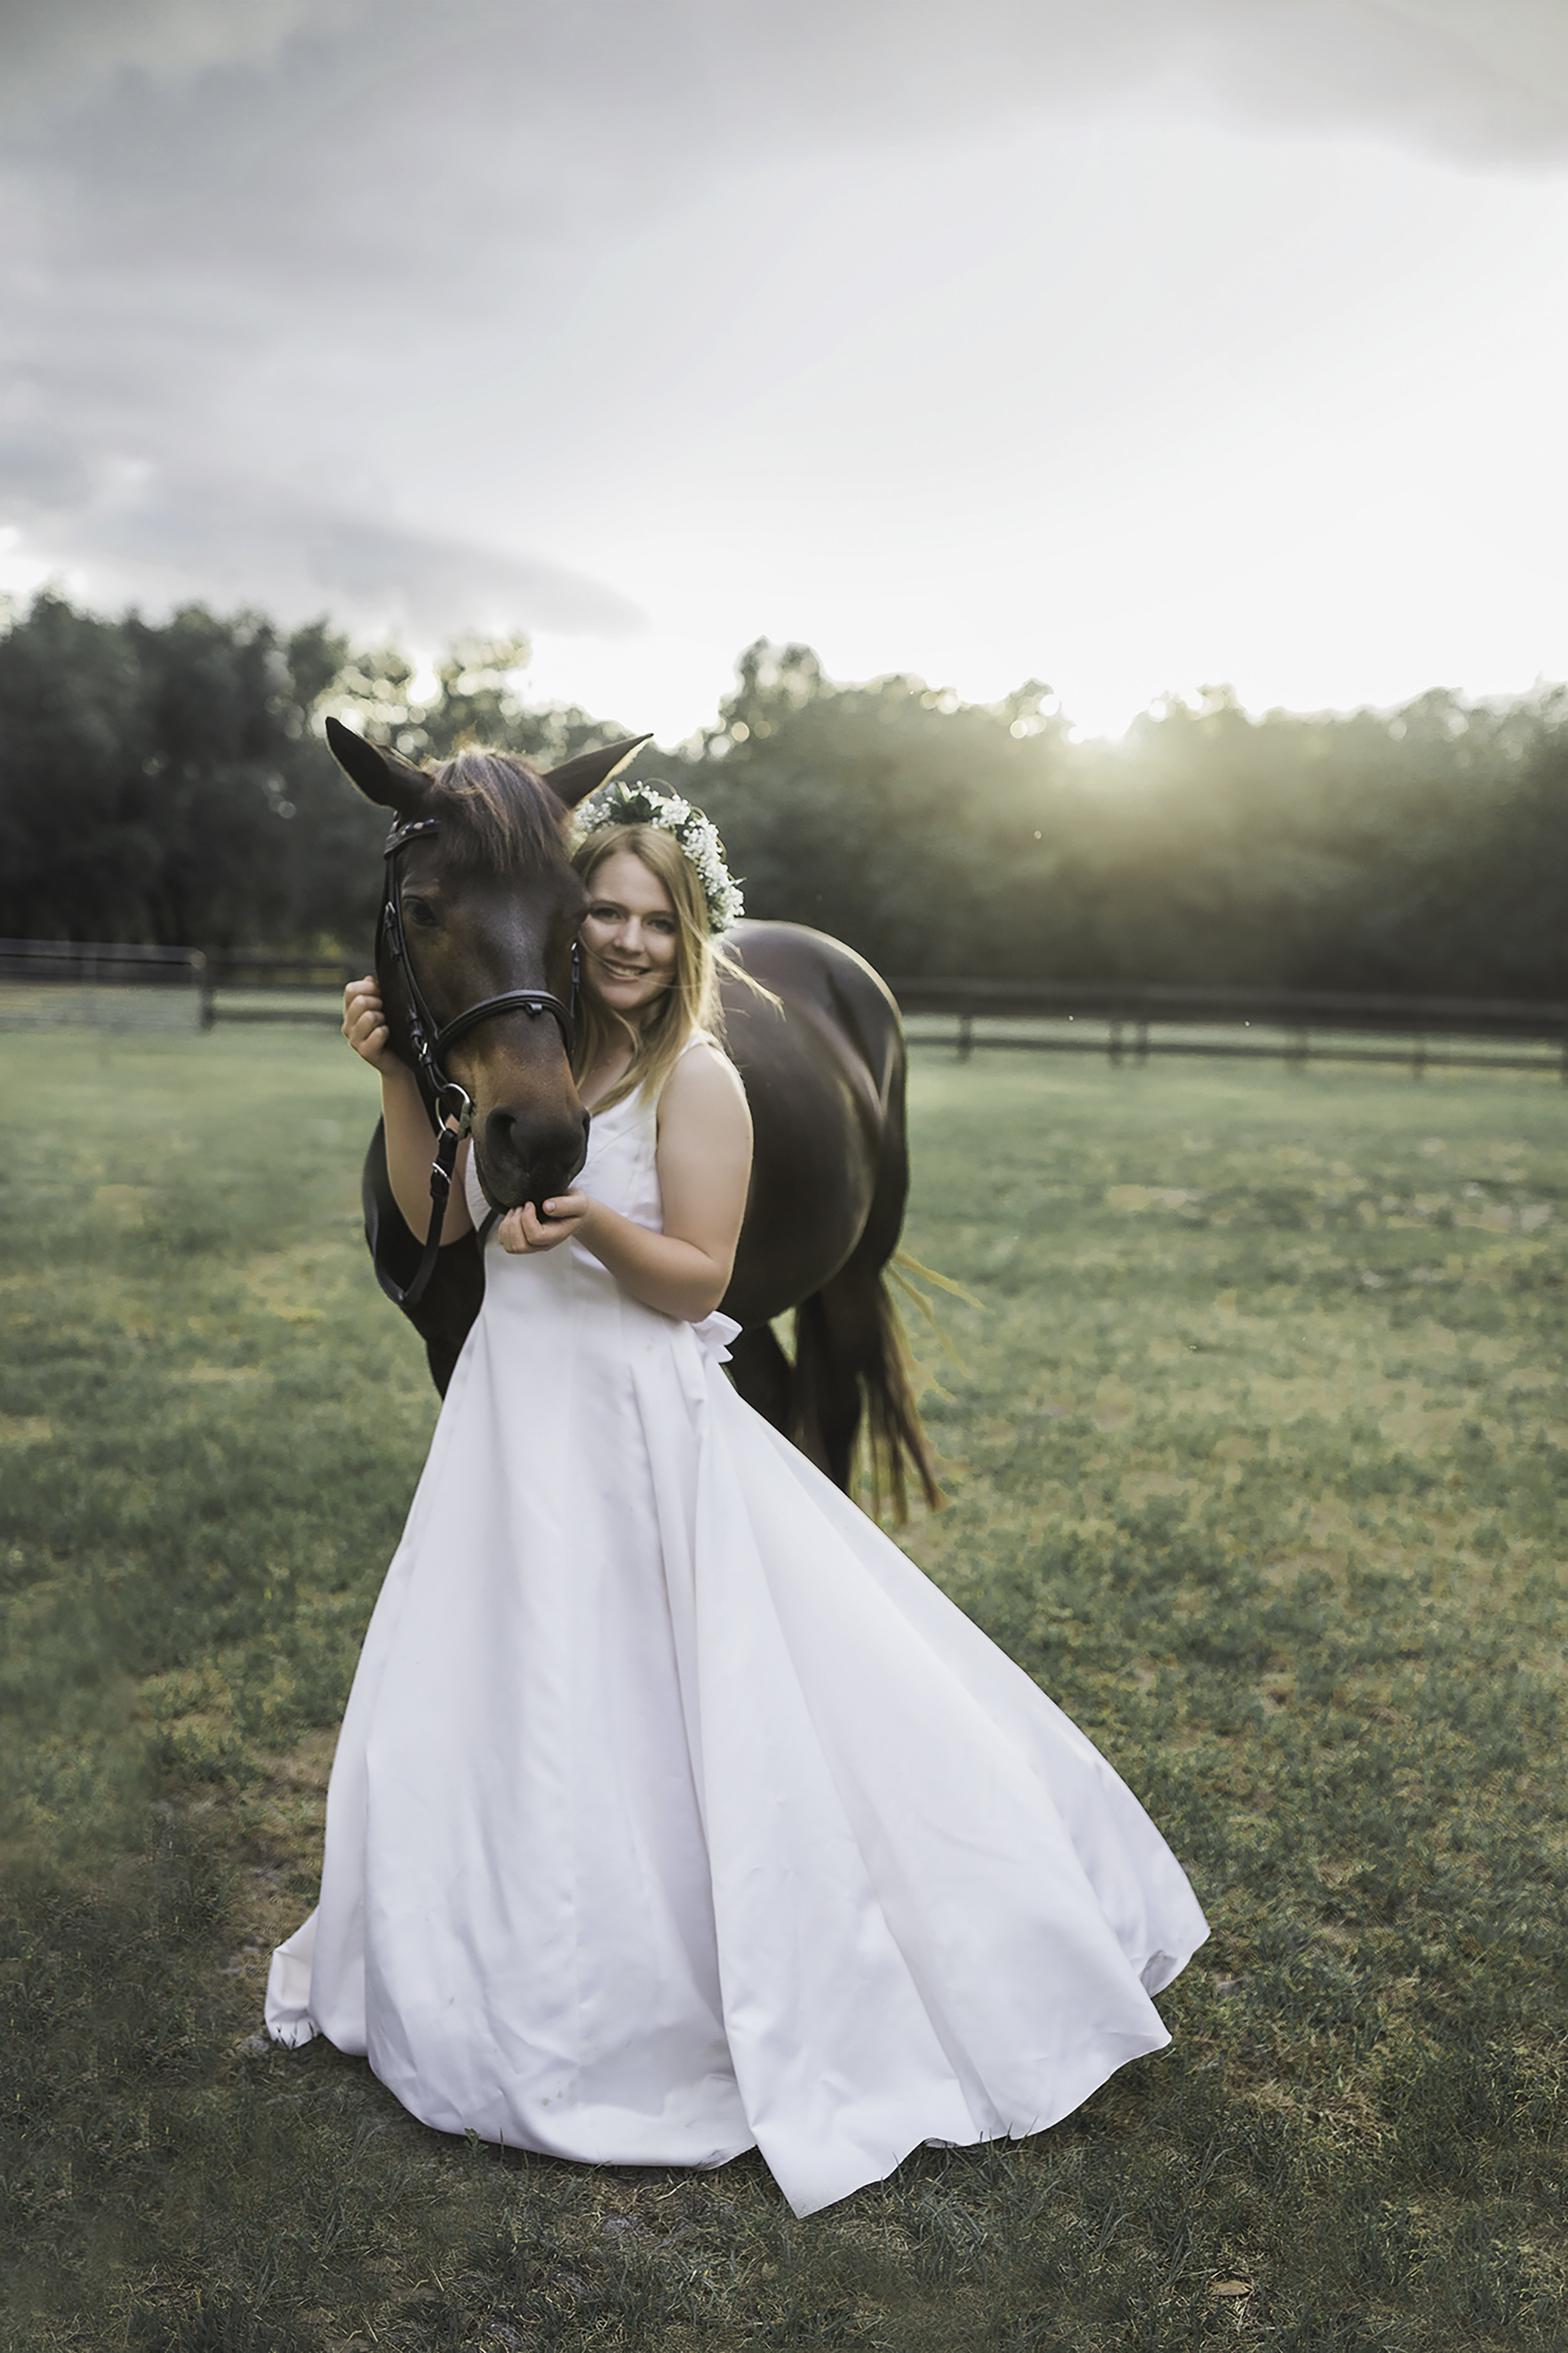 Midlothian VA Senior pictures with your horse